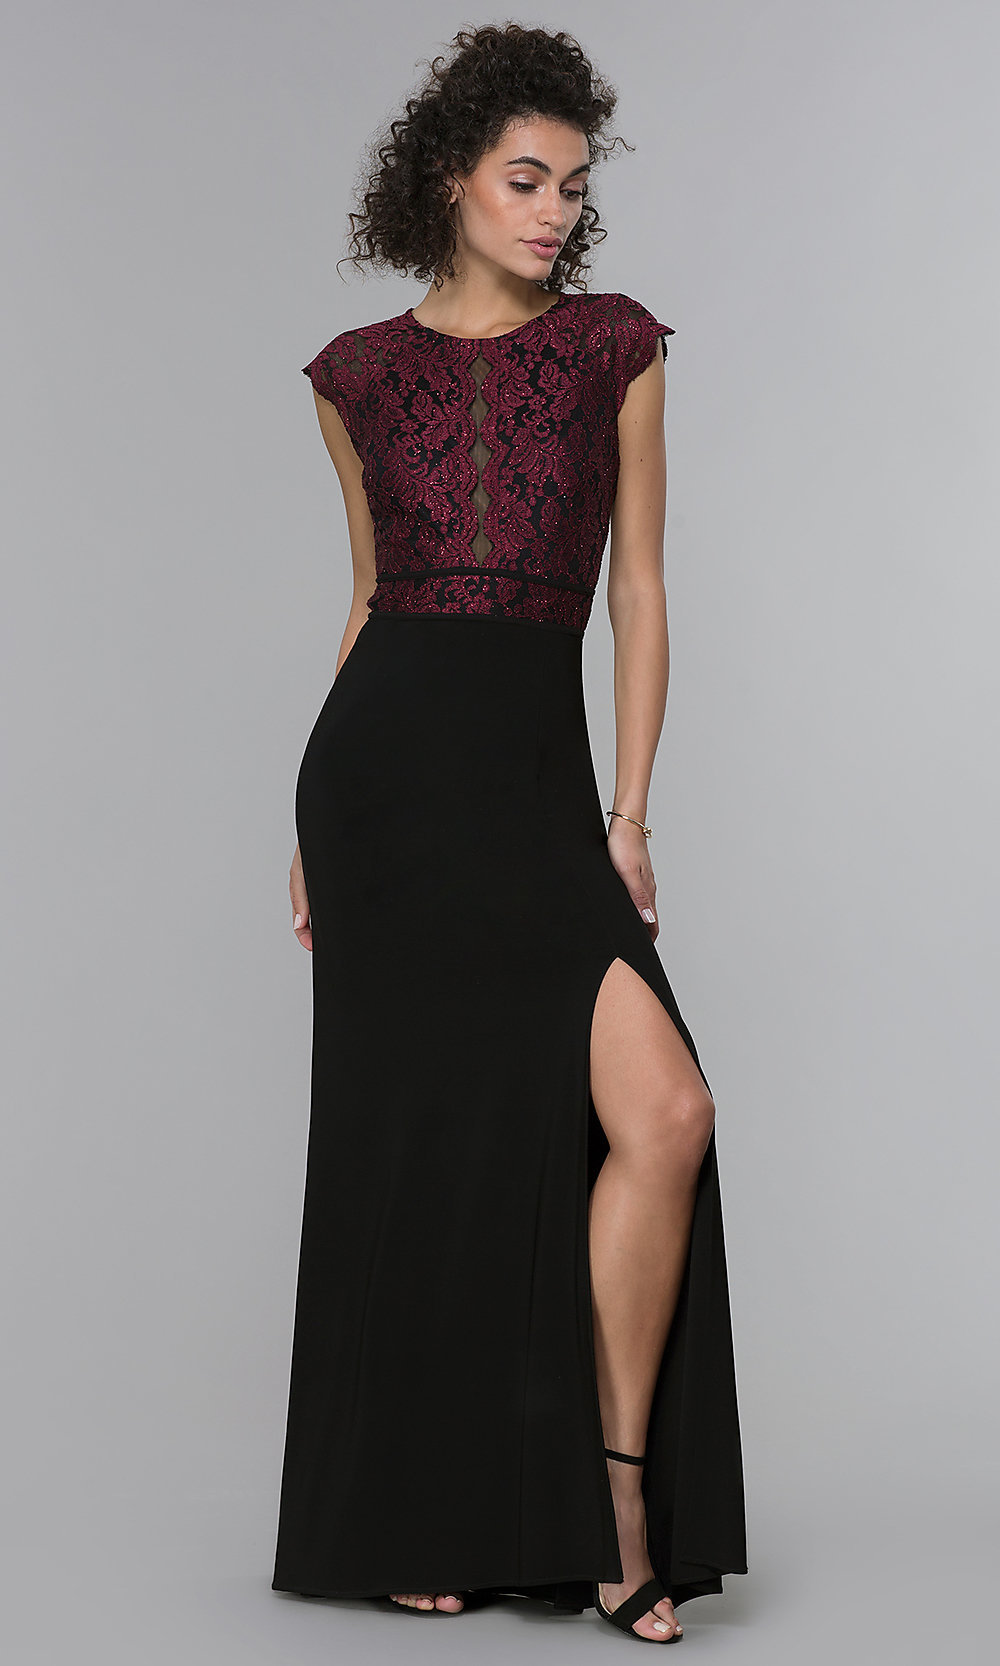 Long Lace-Bodice Formal MOB Dress - PromGirl